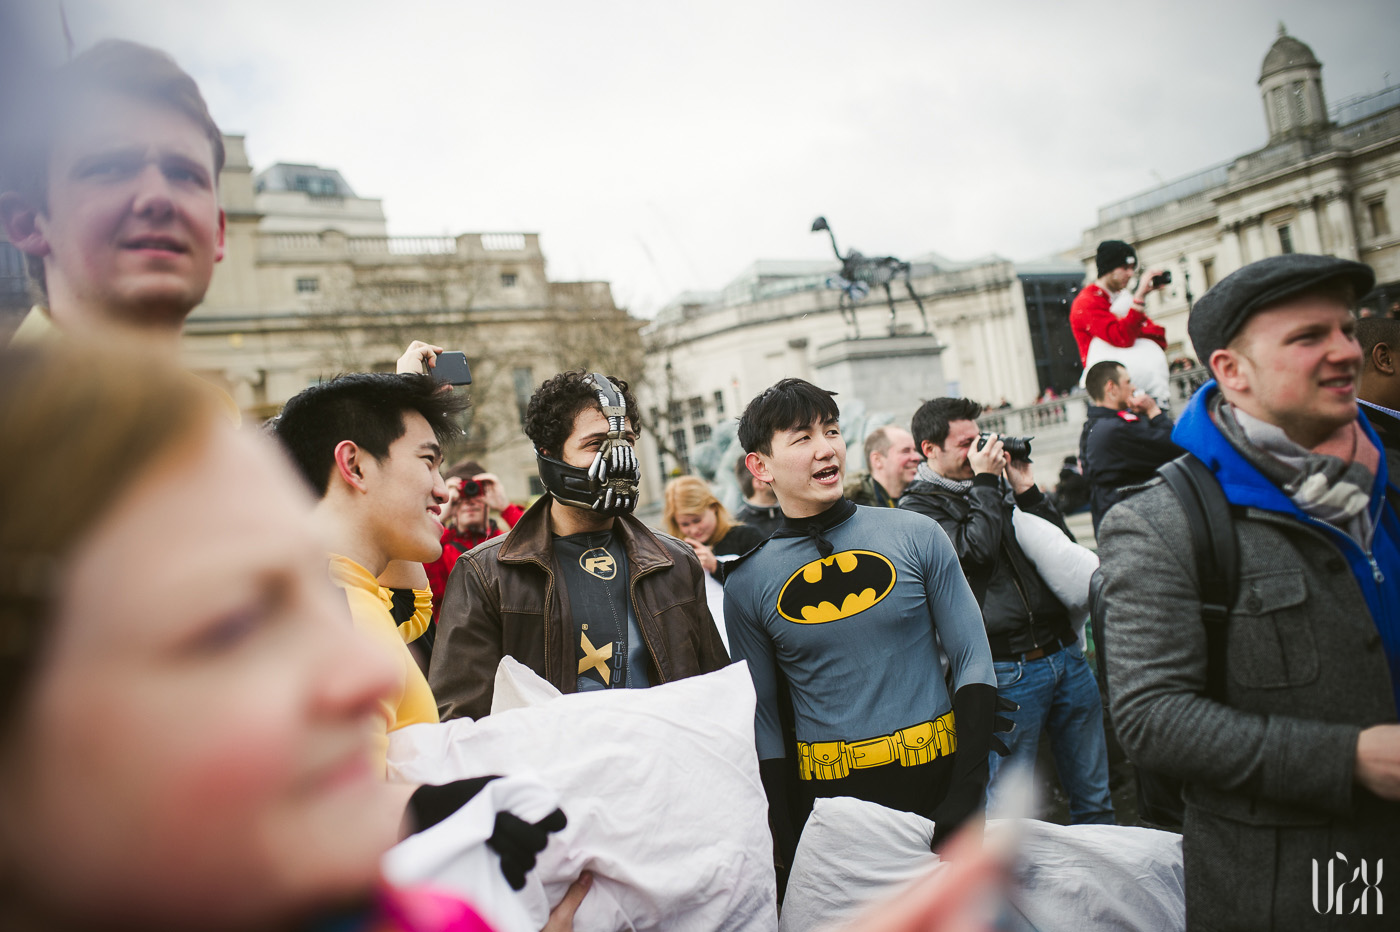 International Pillow Fight Day In London 2015 Street Photography Pagalviu Musis 20